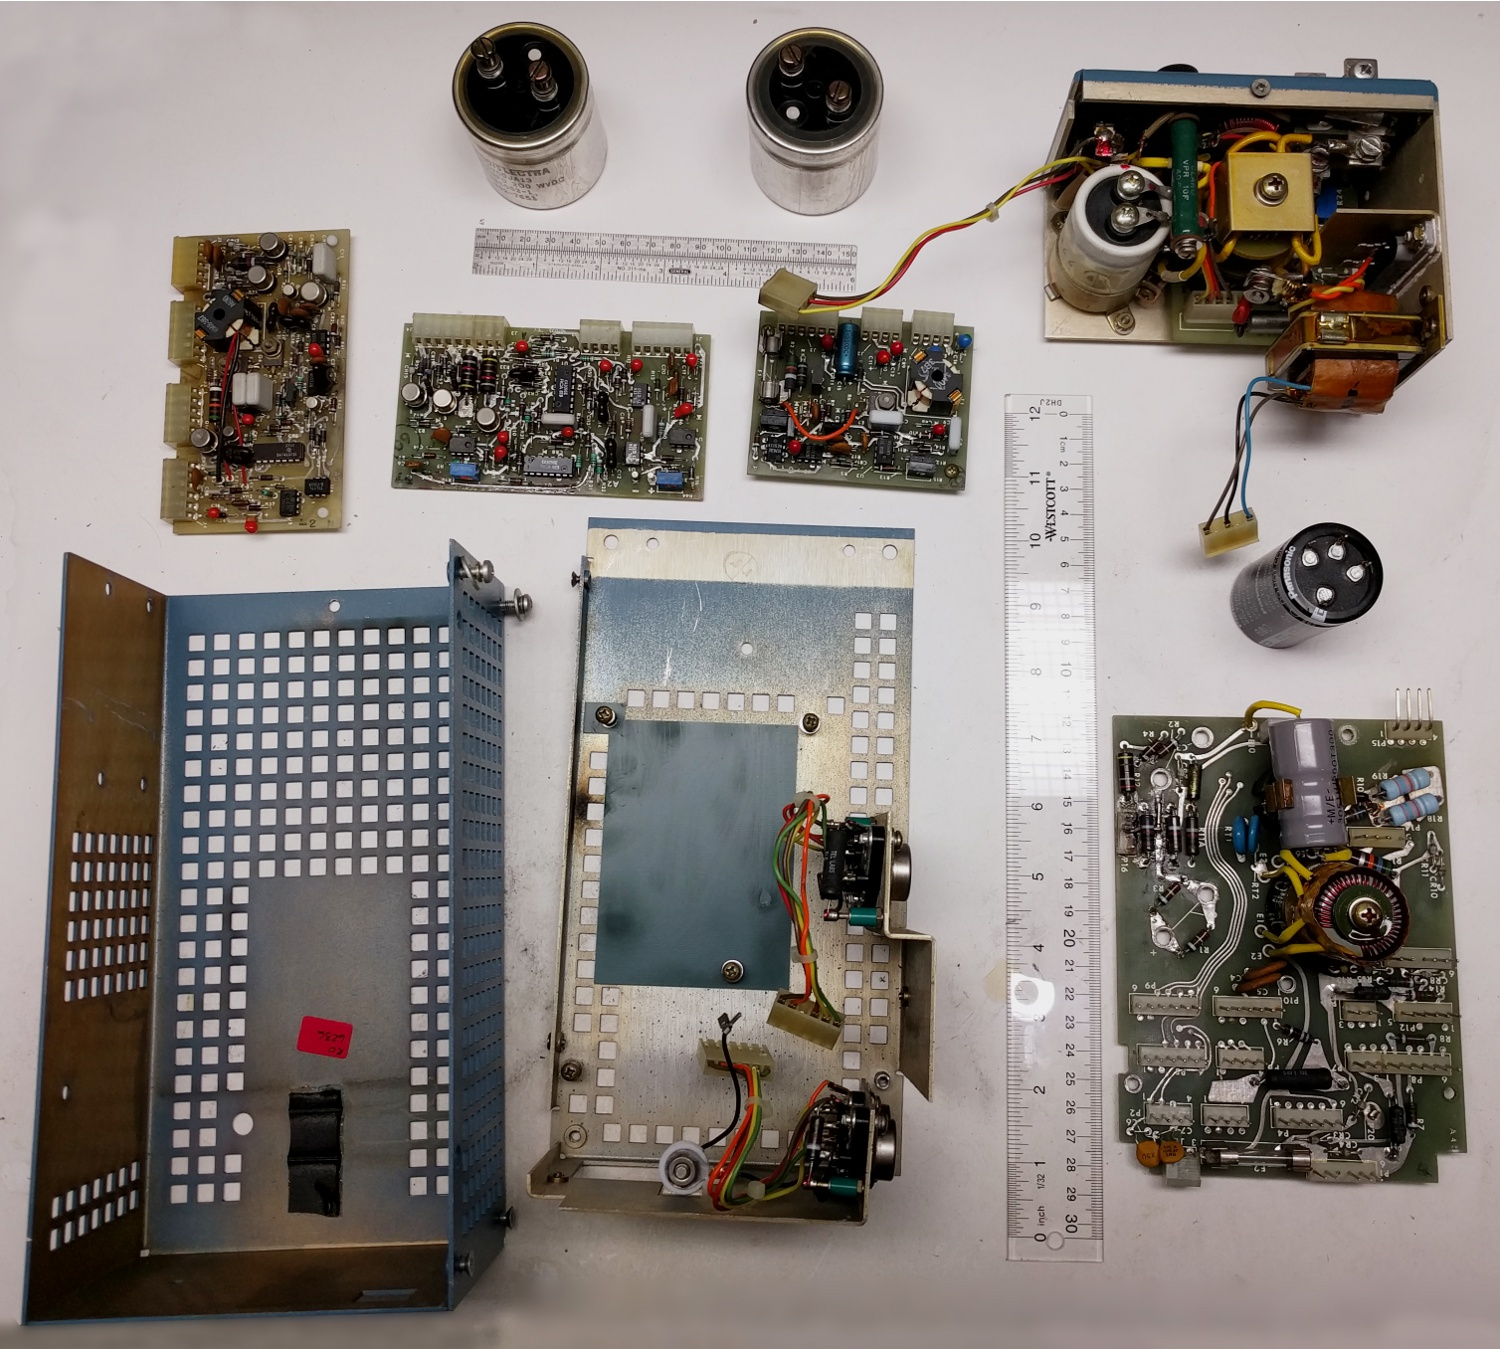 Ken Shirriffs Blog June 2016 Smps Board Tablet Circuit The Altos Switching Power Supply Disassembled Main Is In Lower Right